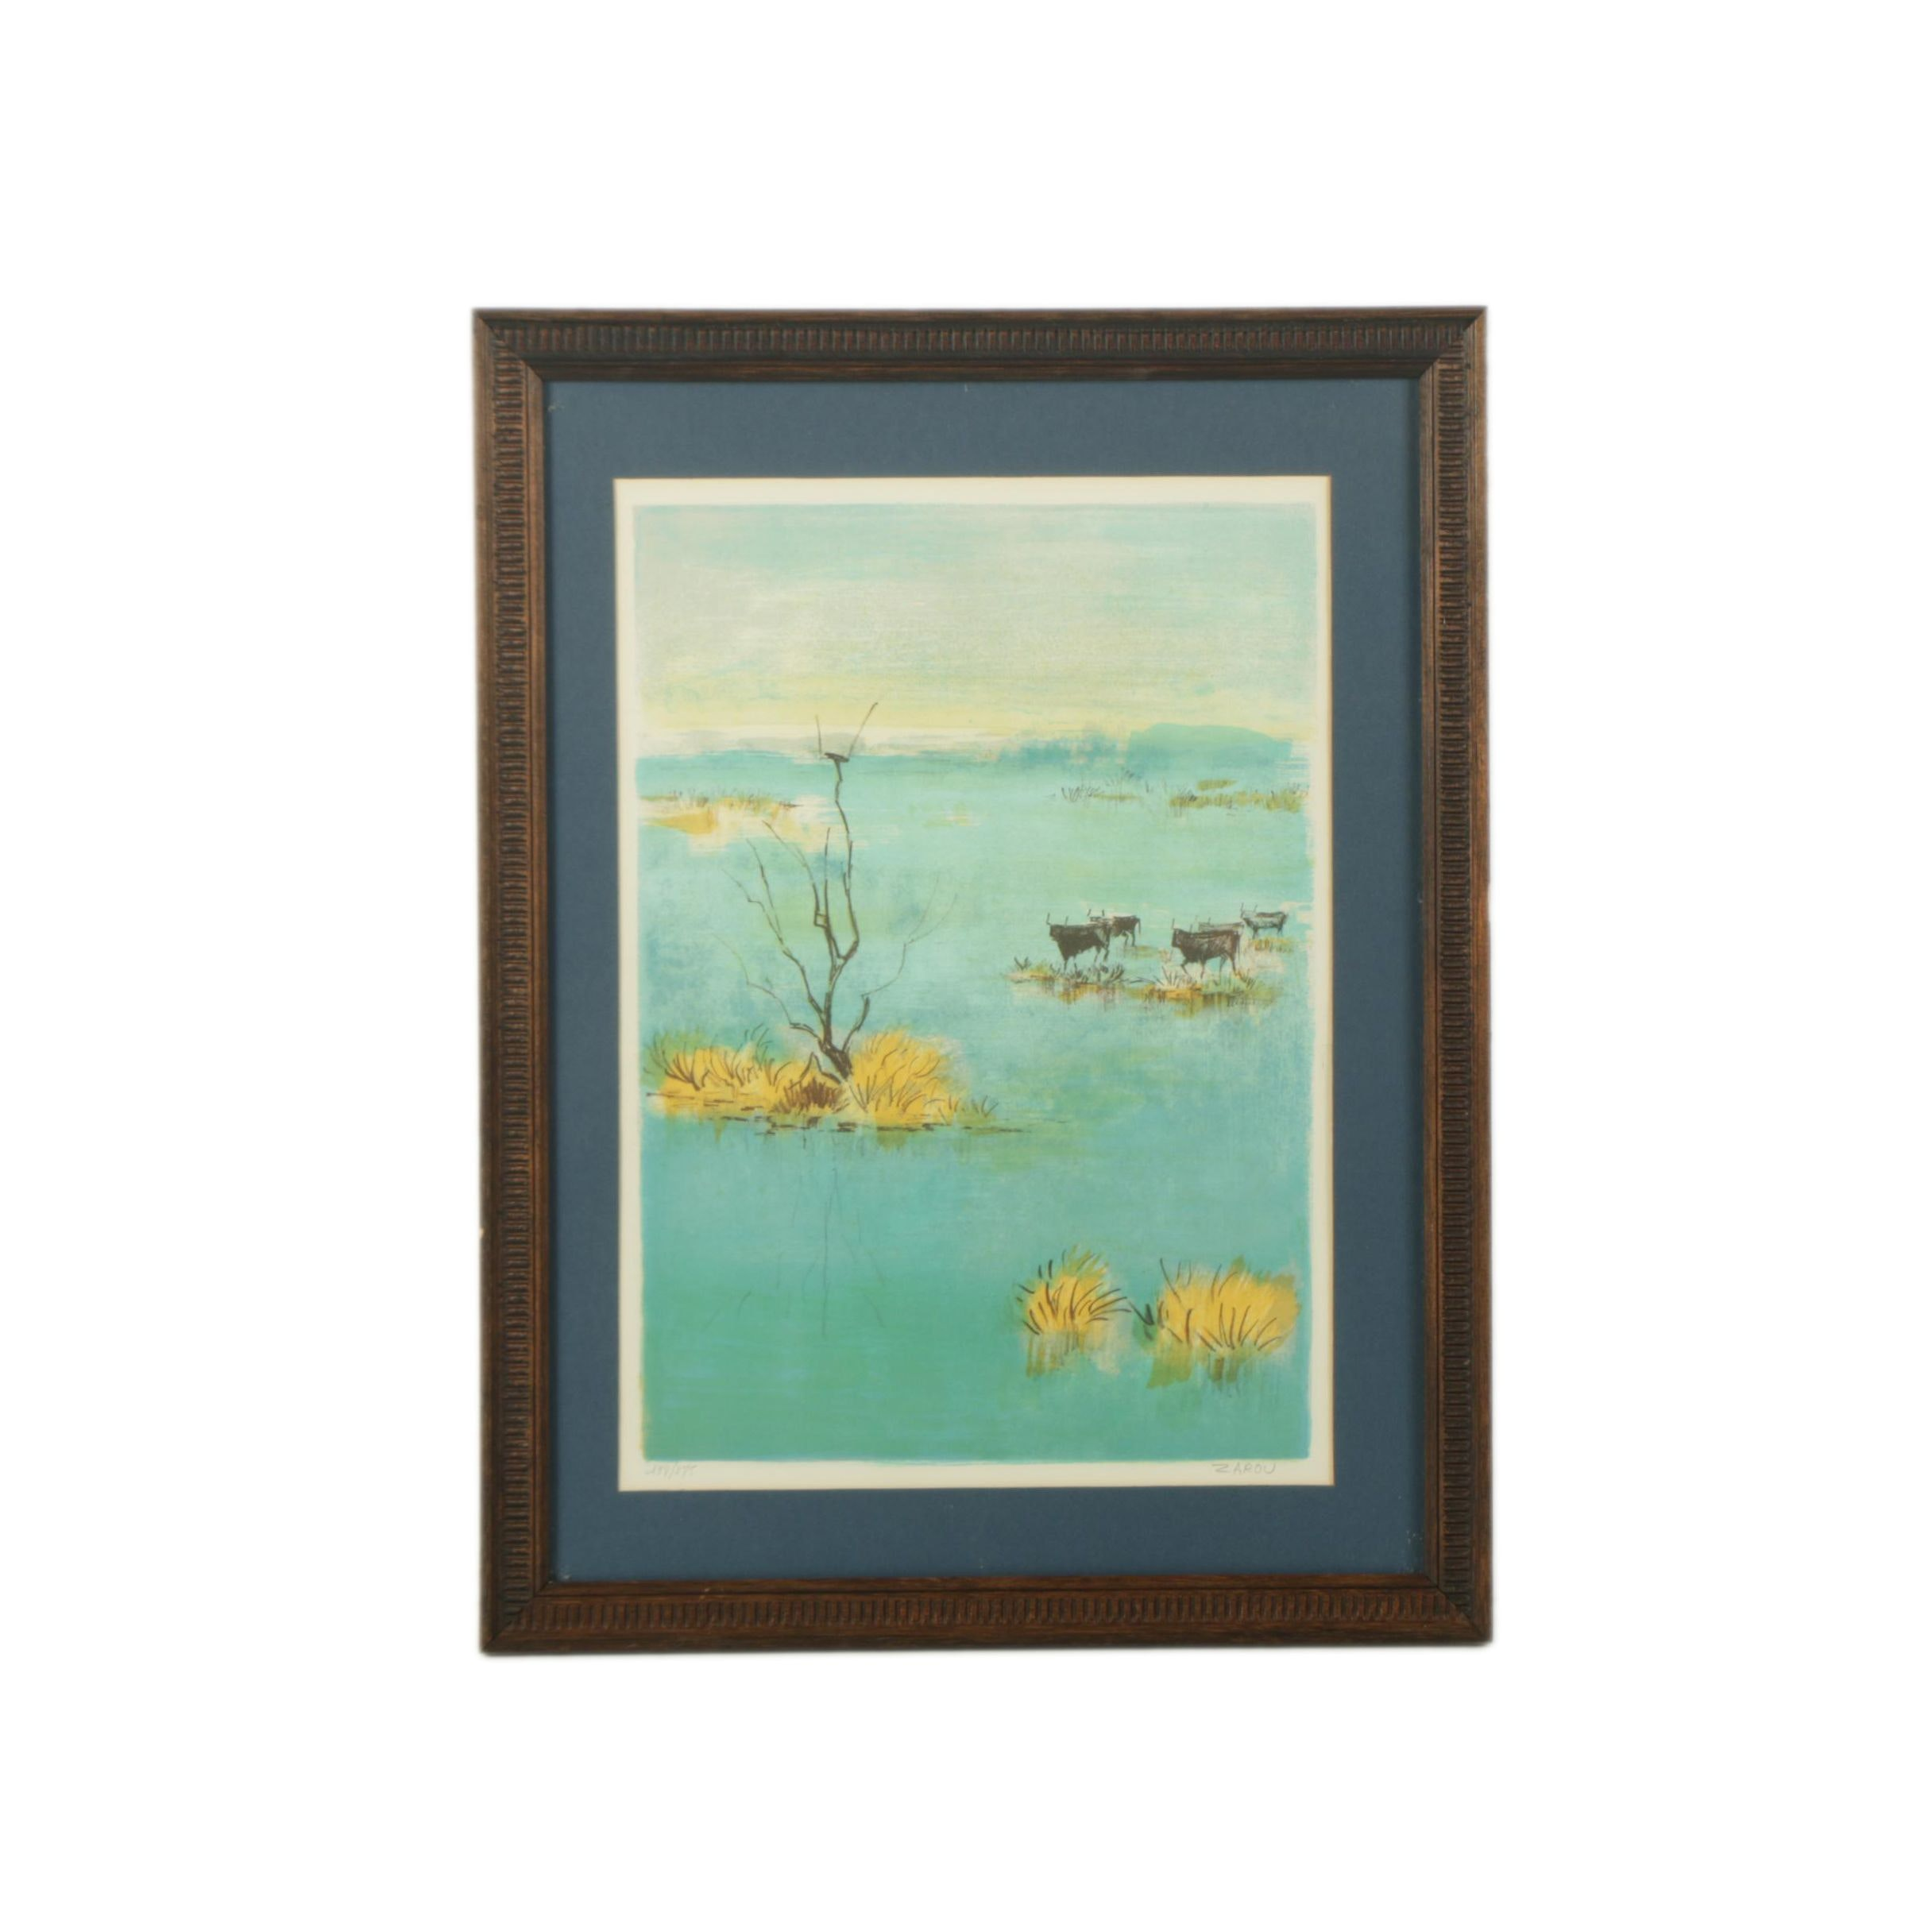 Victor Zarou Limited Edition Color Lithograph on Paper